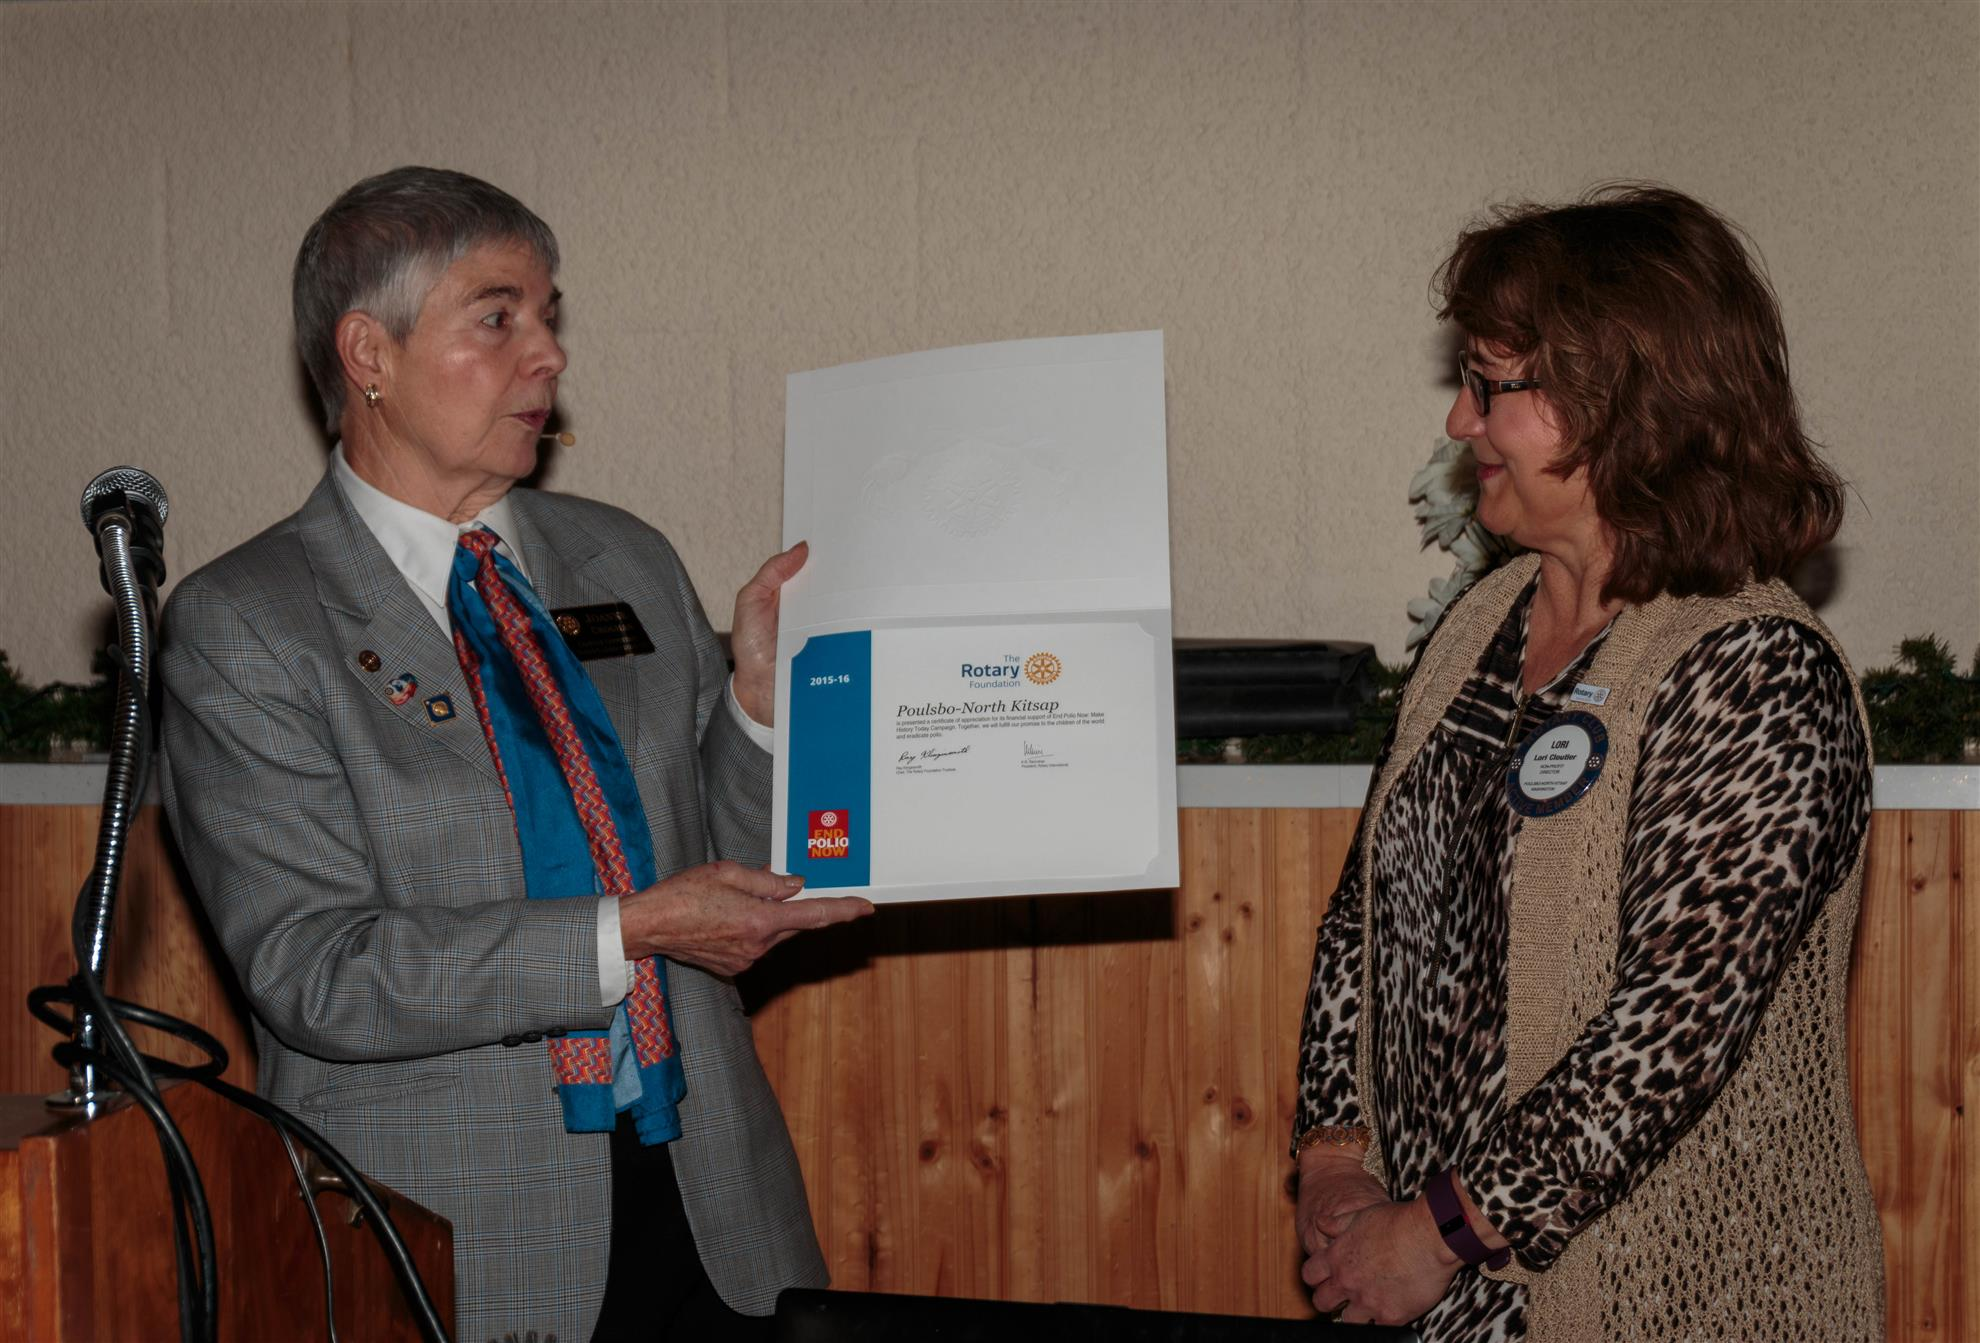 Lori Cloutier receives award from District Governor Joanne Croghan